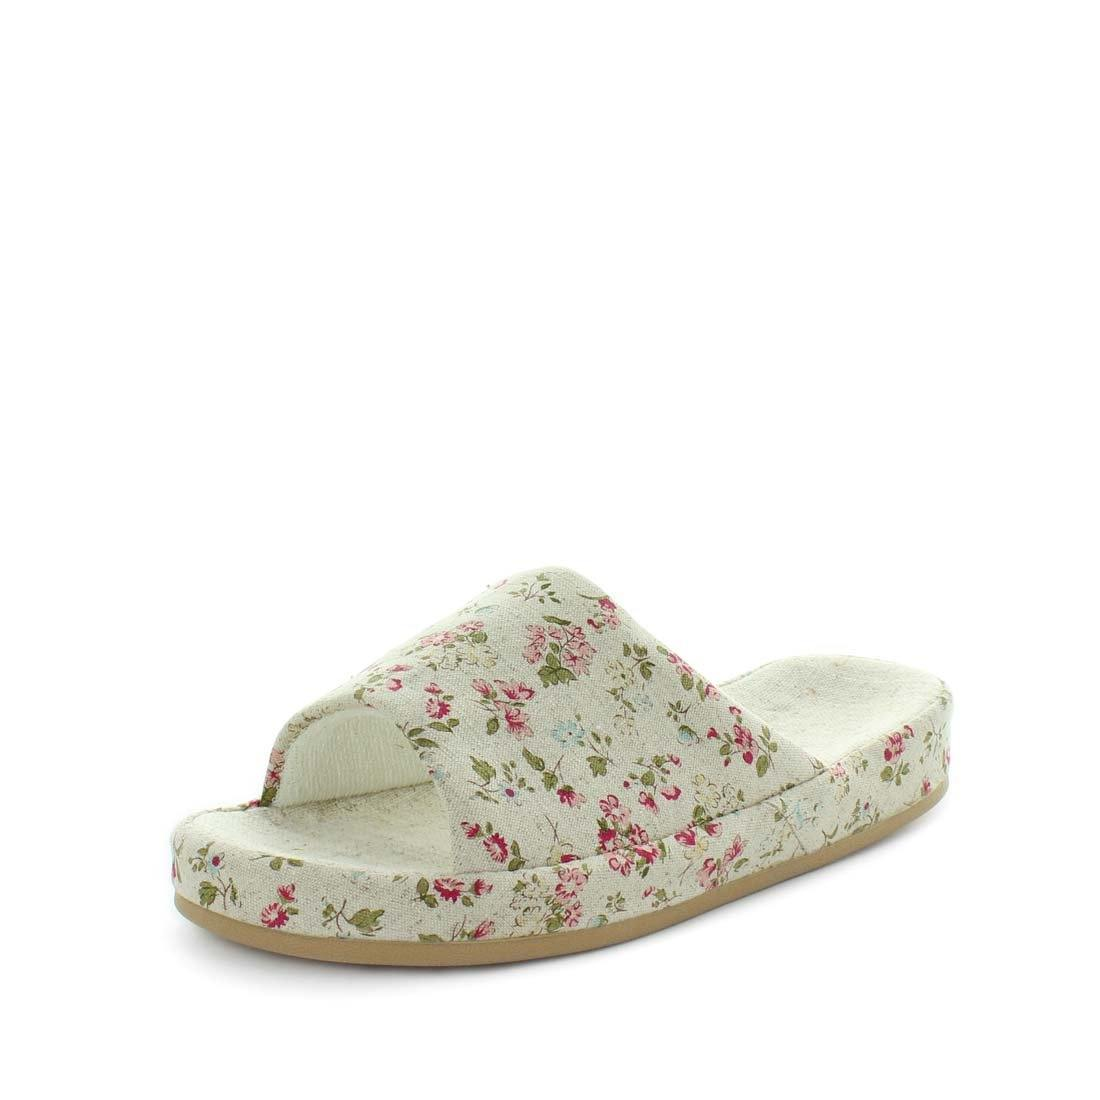 Everly by panda slippers - slip on style slippers that are environmentally friendly, hemp design and odor controlling materials - indoor and out door slippers - slide style slippers - womens slippers - womens summer slippers - panda slippers